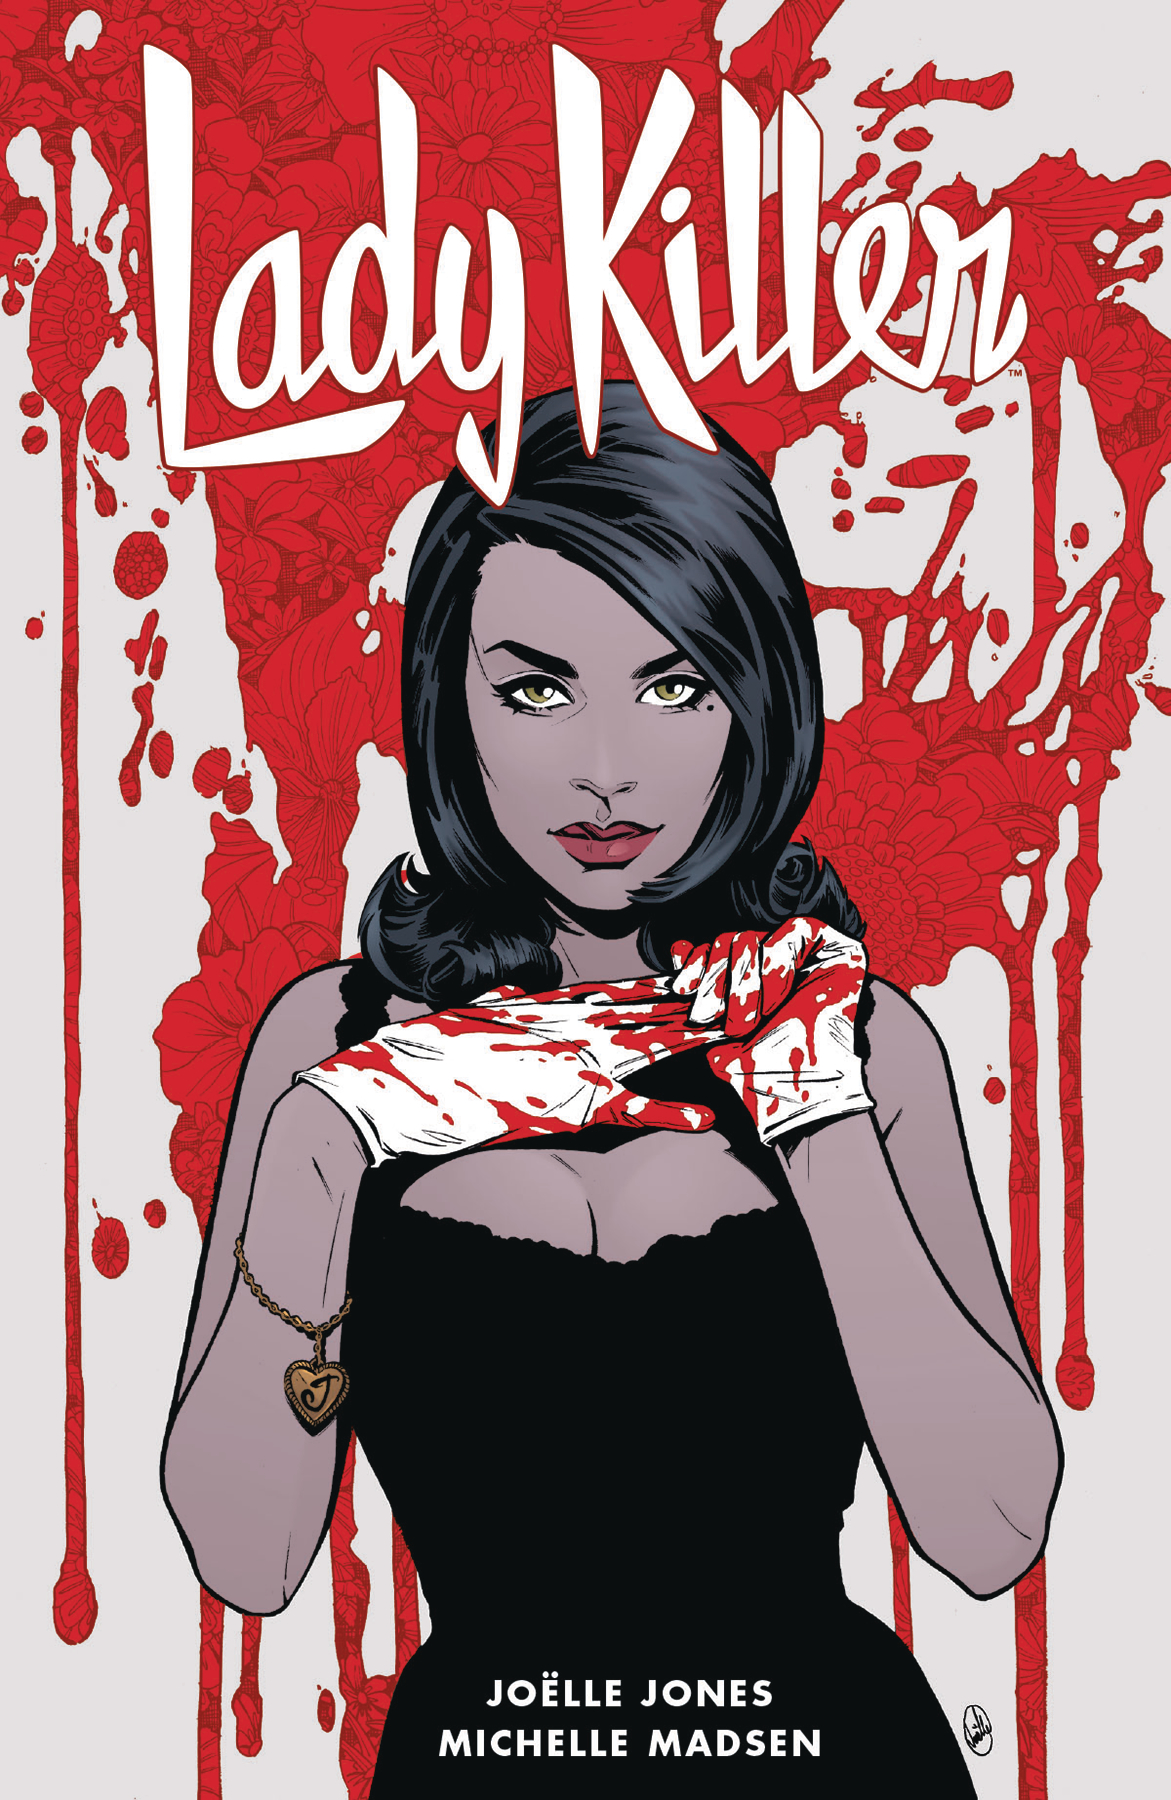 LADY KILLER TP VOL 02 (JUN170048)